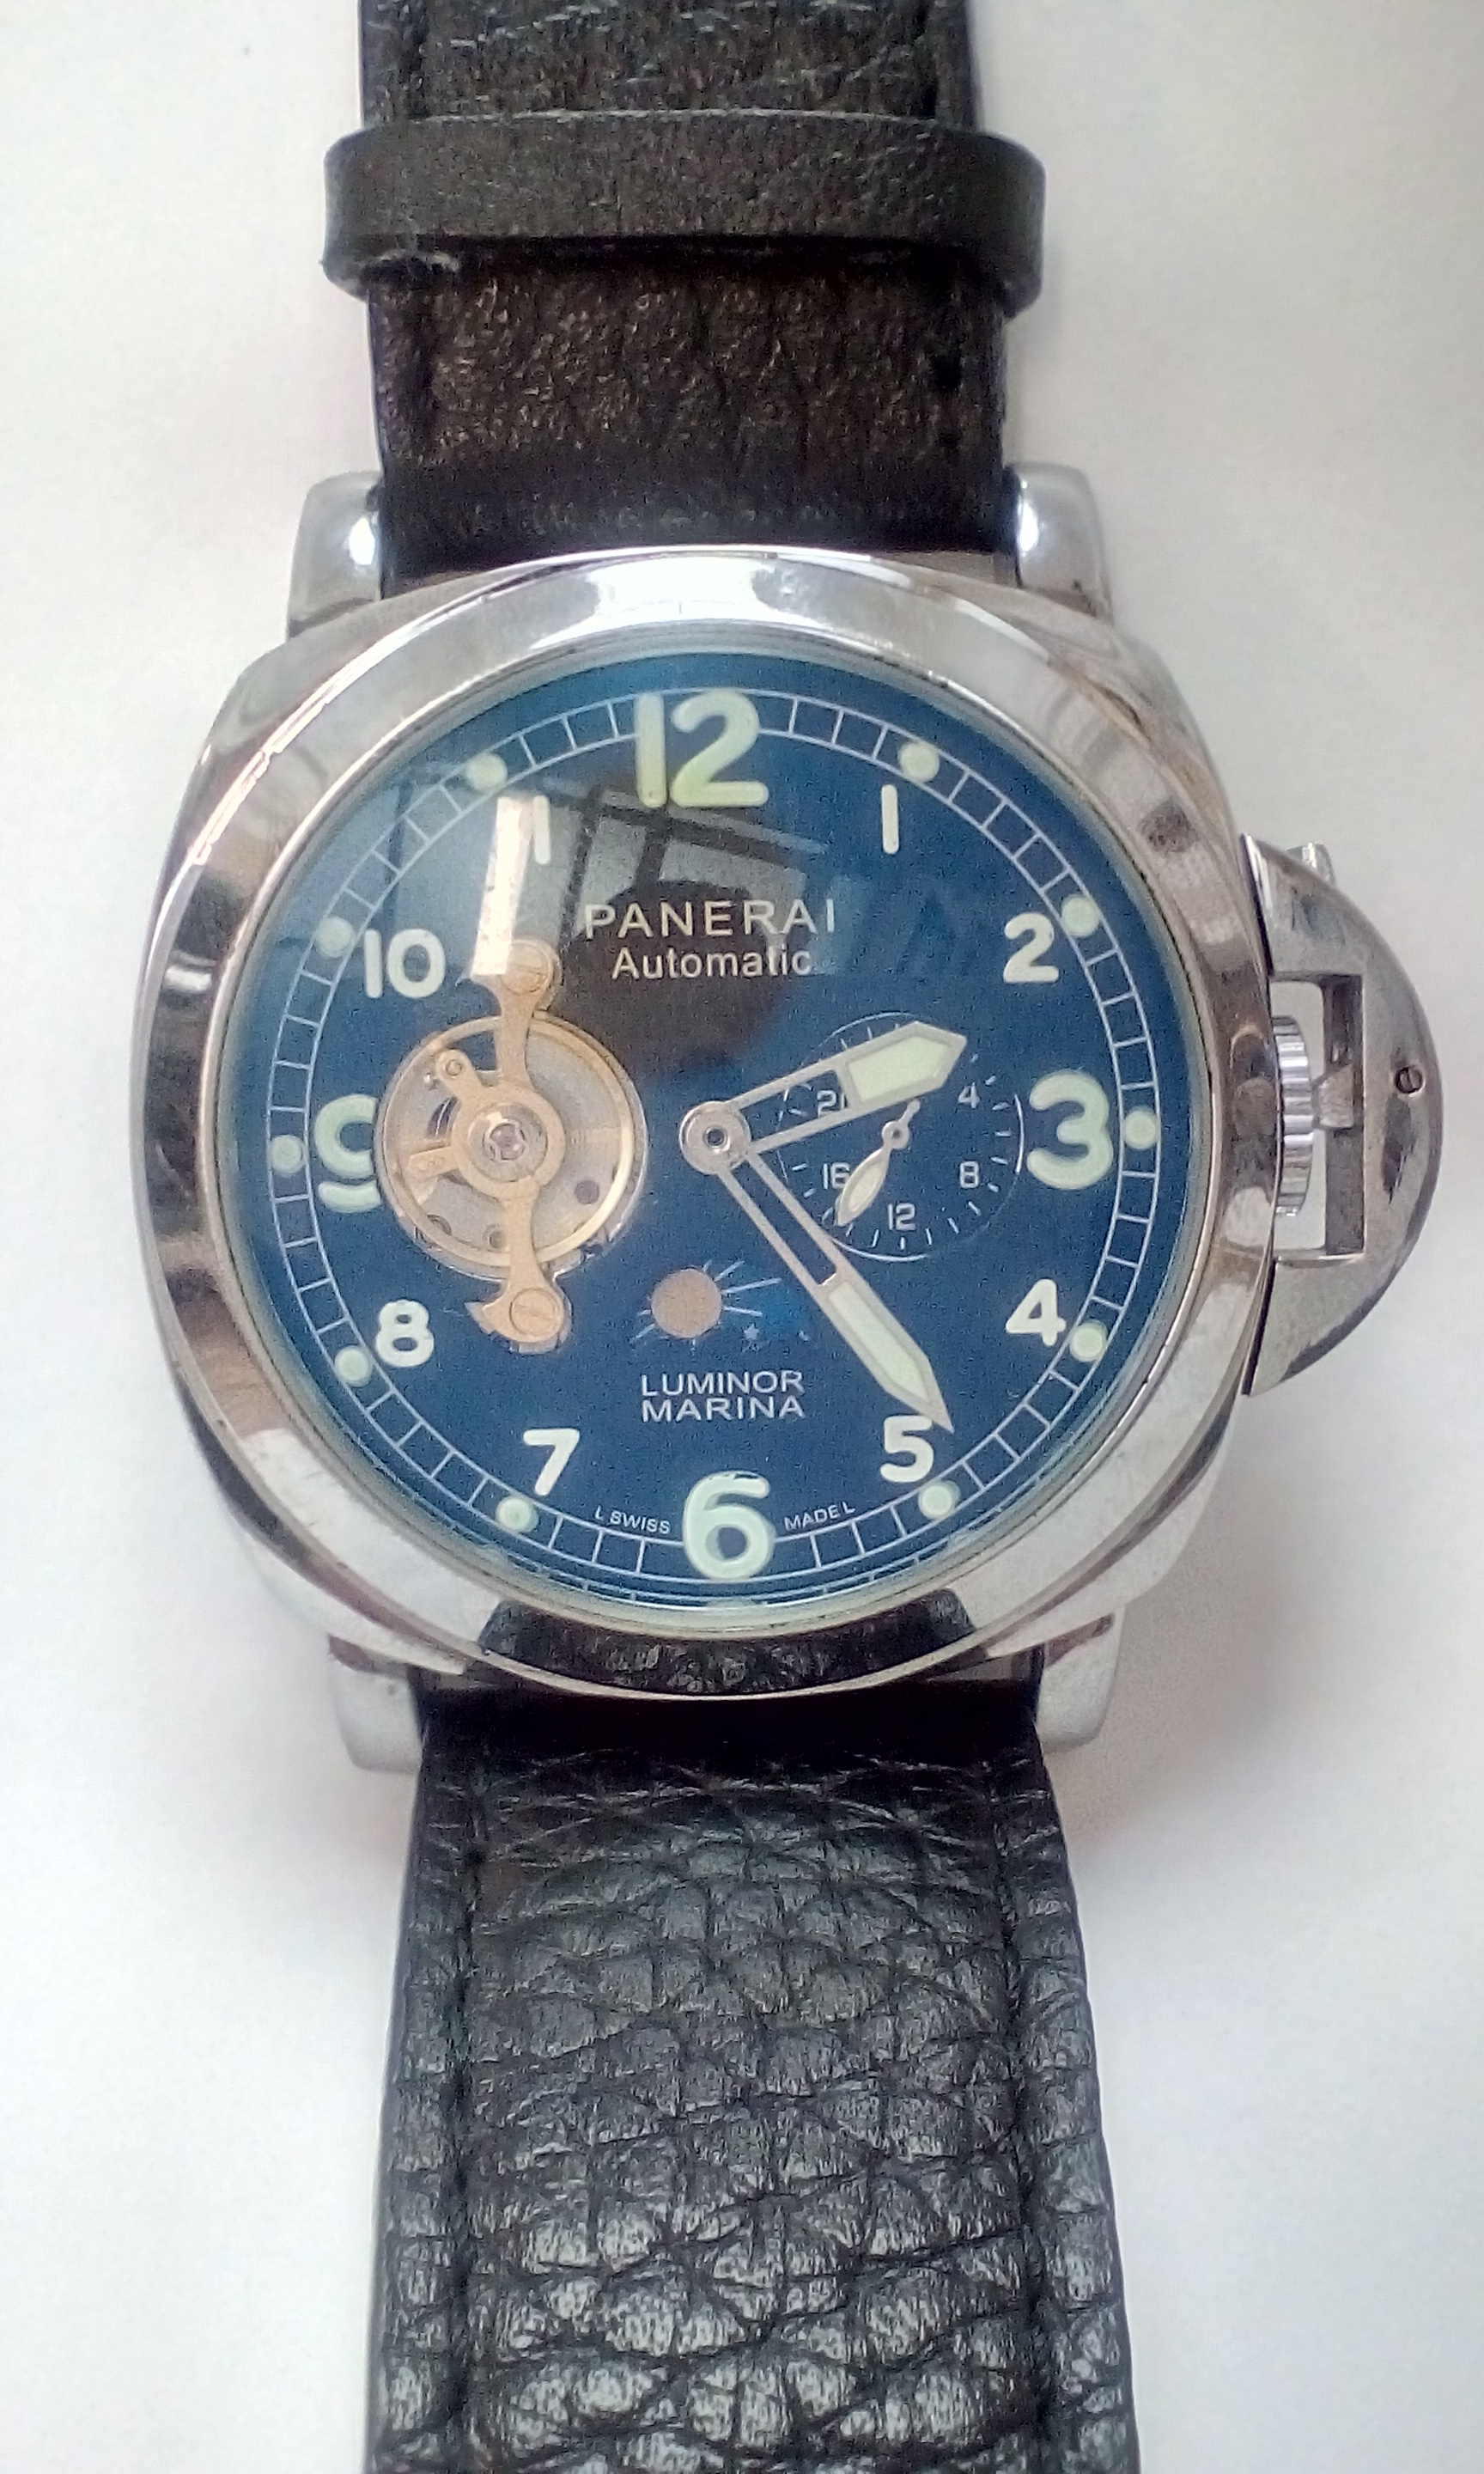 Lot 196 - Panerai Luminor Marina replica wristwatch, very go